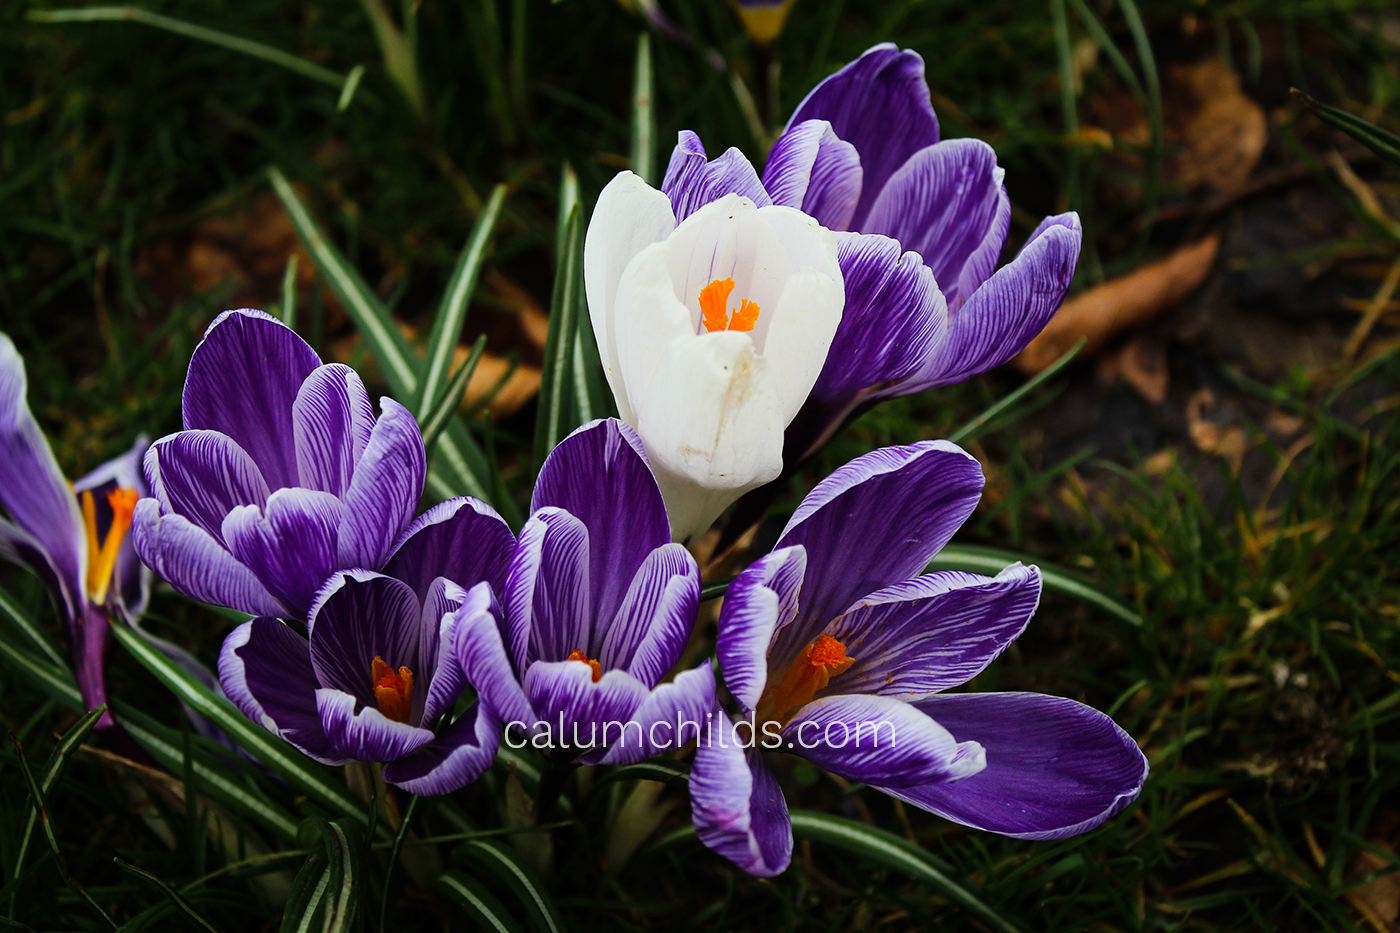 A group of purple and white crocuses shooting up